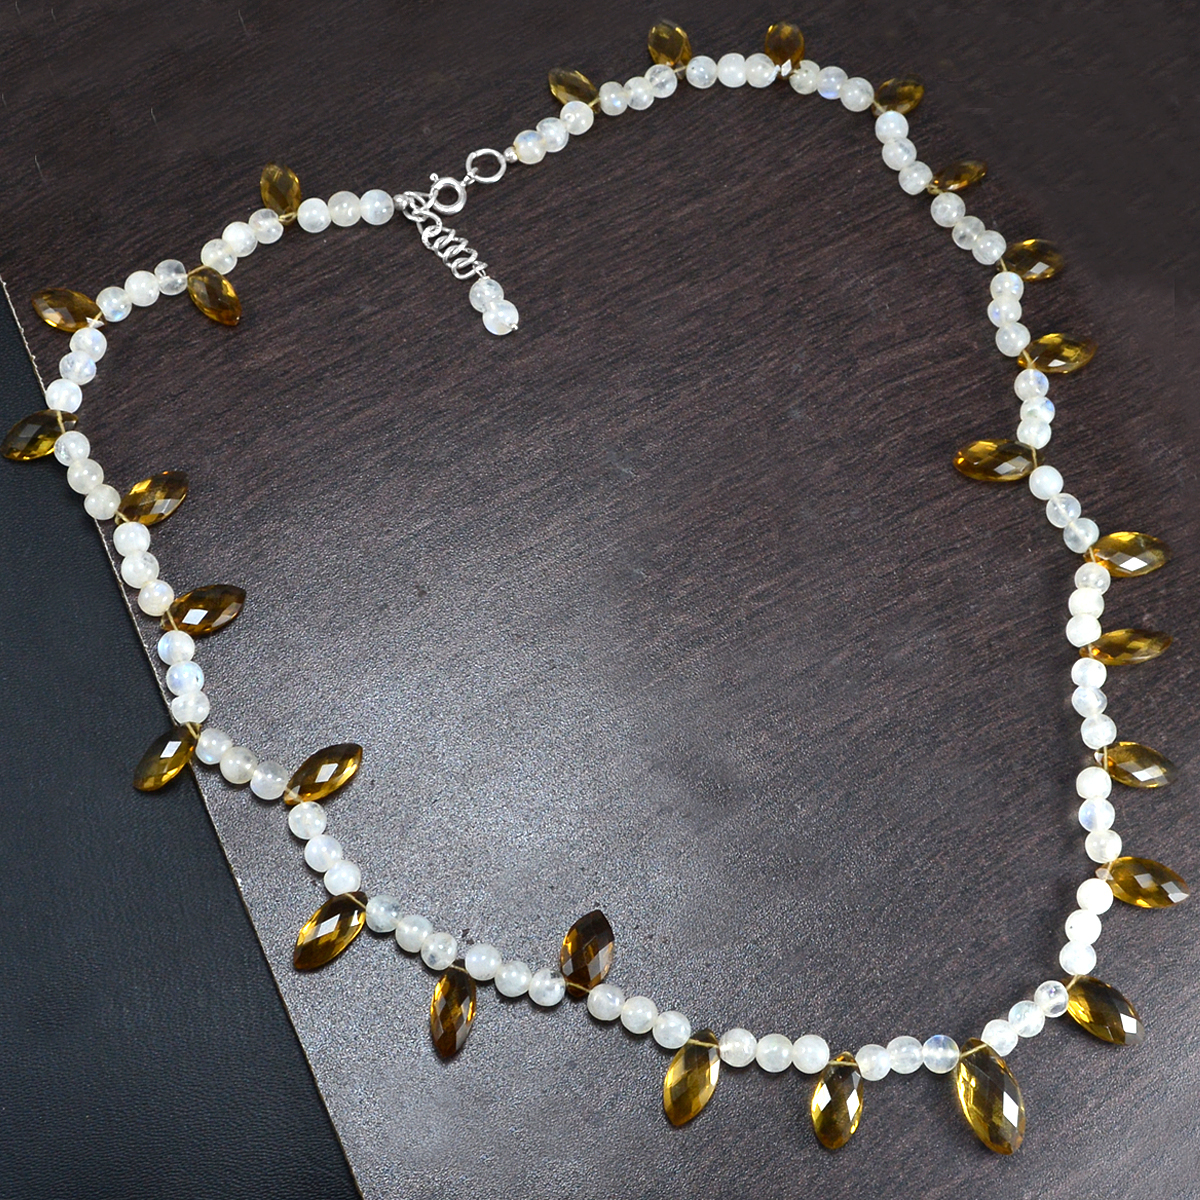 Handmade Jewelry Manufacturer Beaded Round Rainbow Moonstone & Marquise Honey Quartz 925 Sterling Silver Necklace Jaipur Rajasthan India